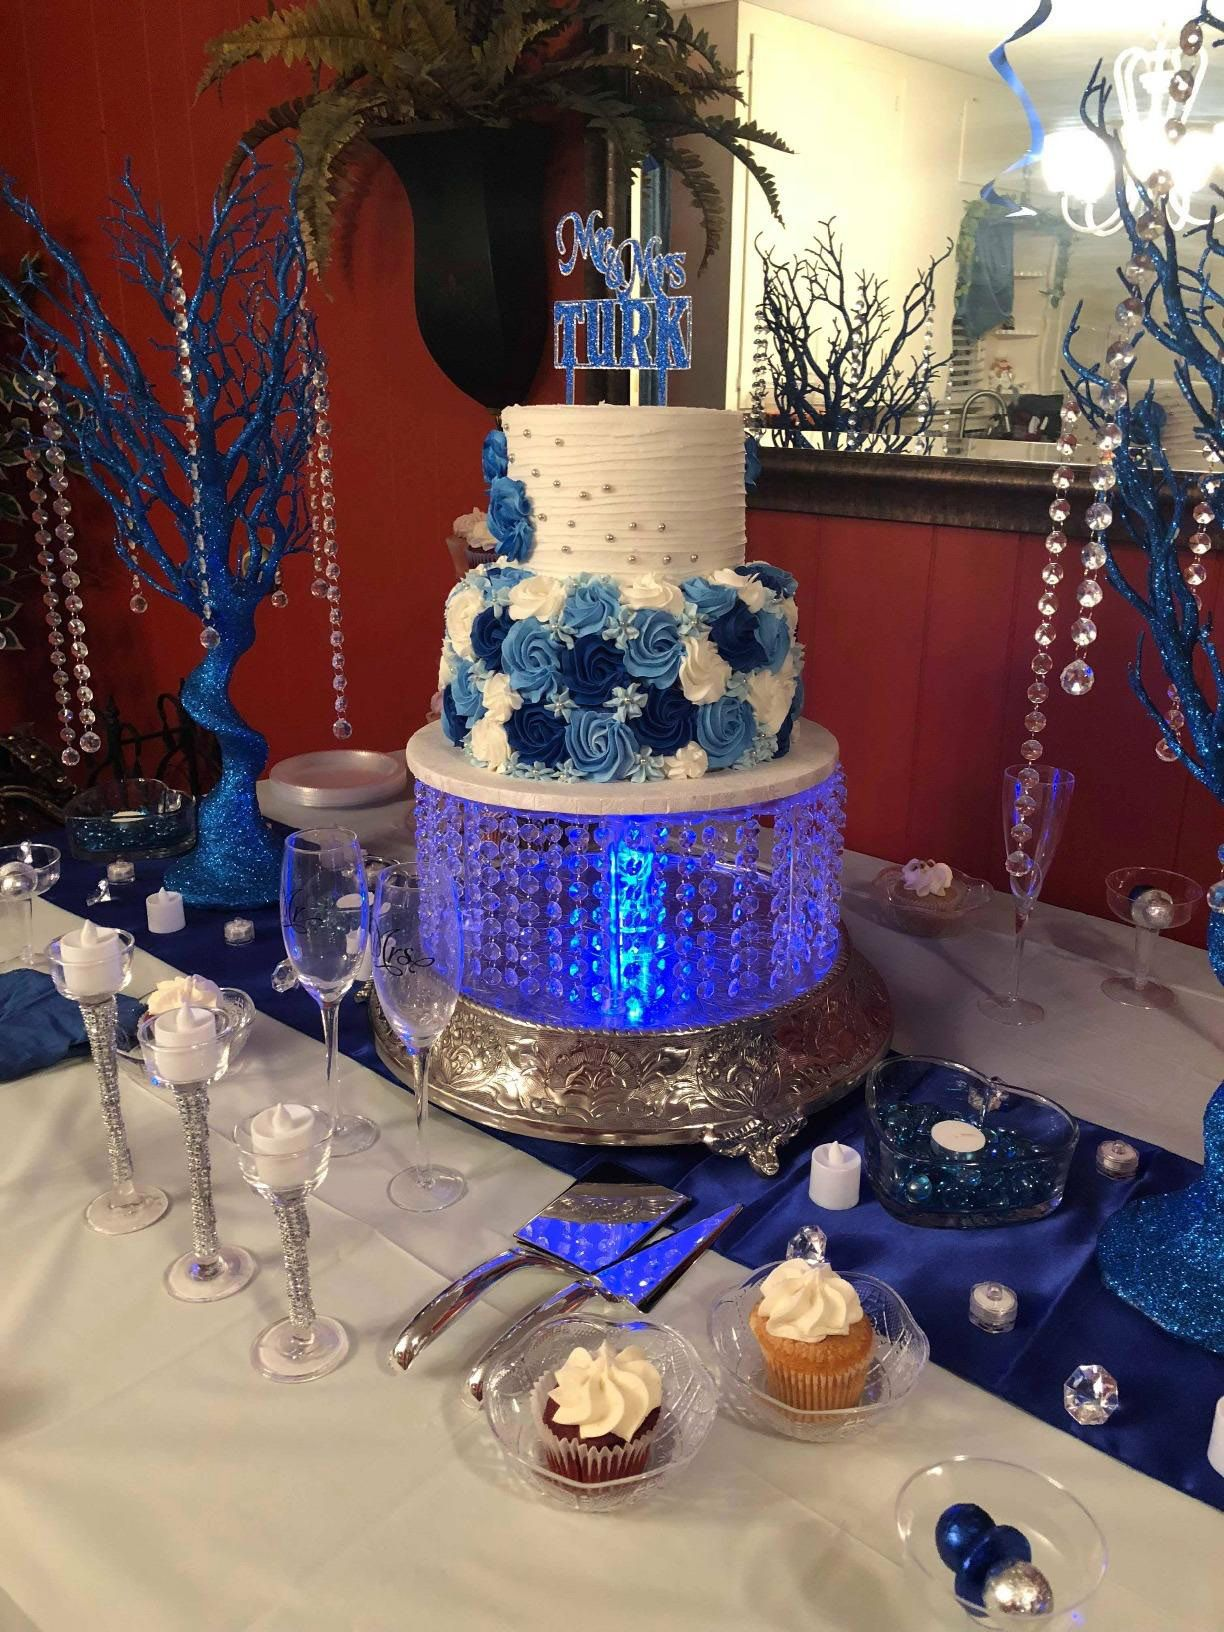 29+ Acrylic cake stand with lights ideas in 2021